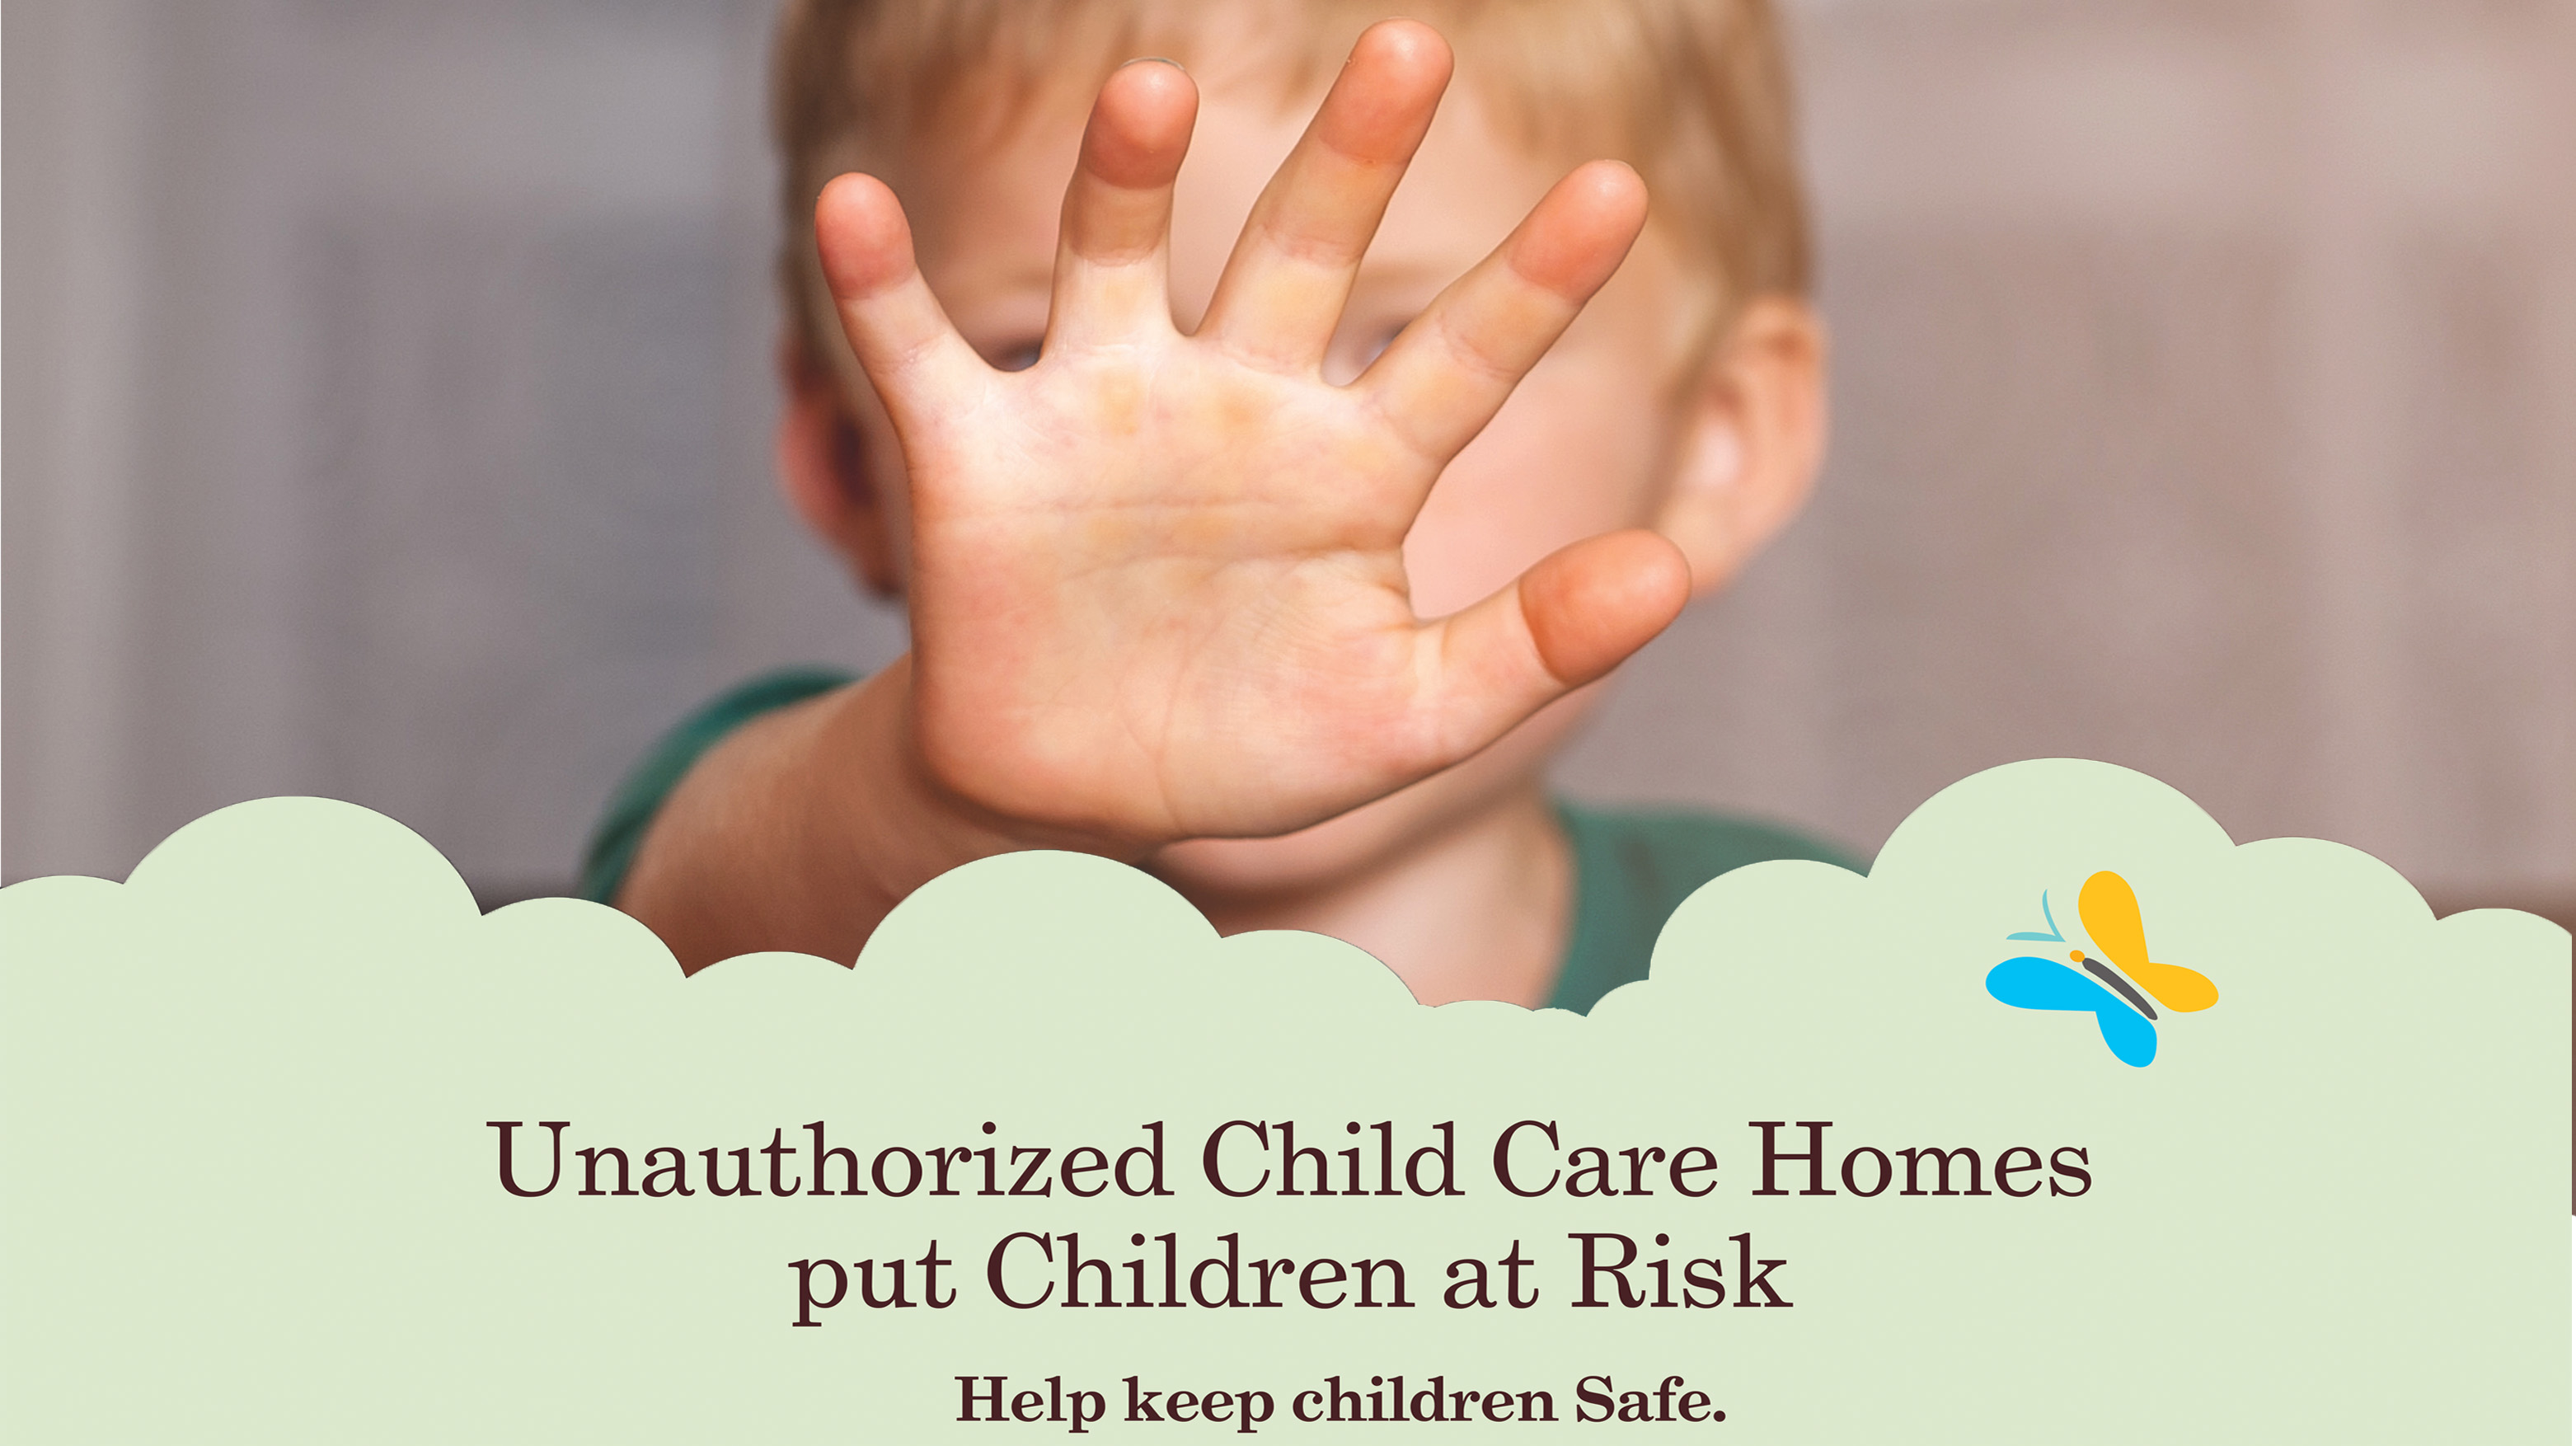 Unauthorized Child Care